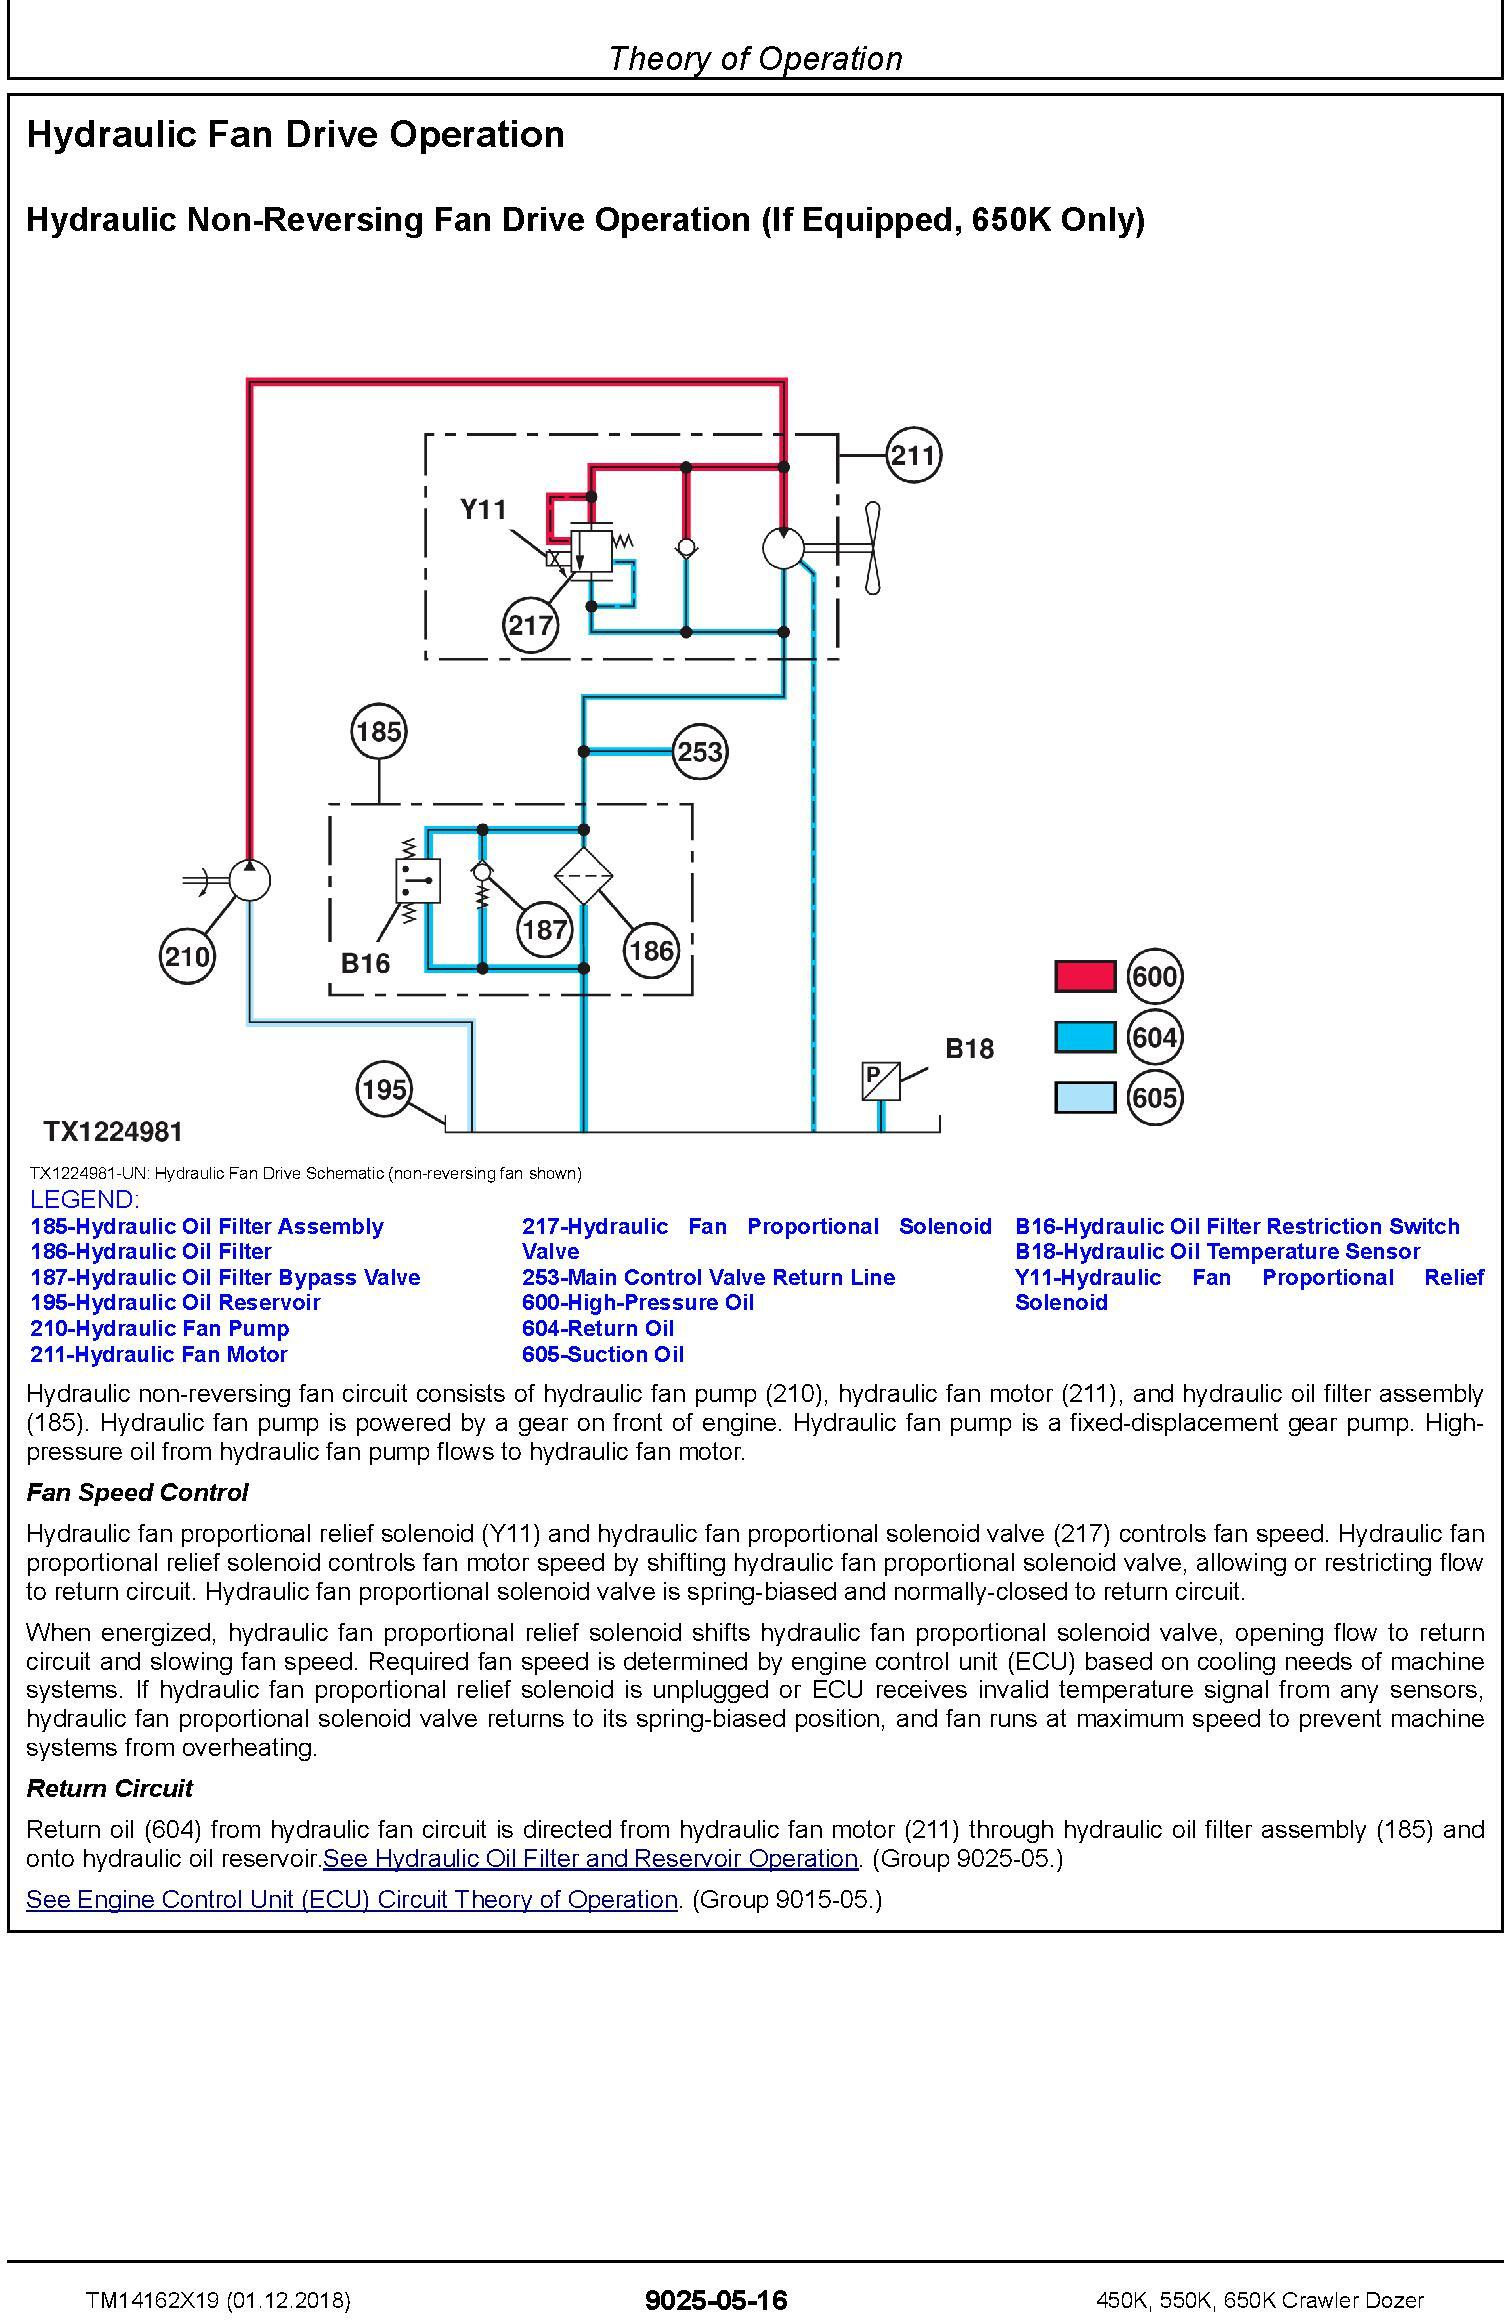 John Deere 450K, 550K, 650K (SN. F305399-) Crawler Dozer Diagnostic Technical Manual (TM14162X19) - 2